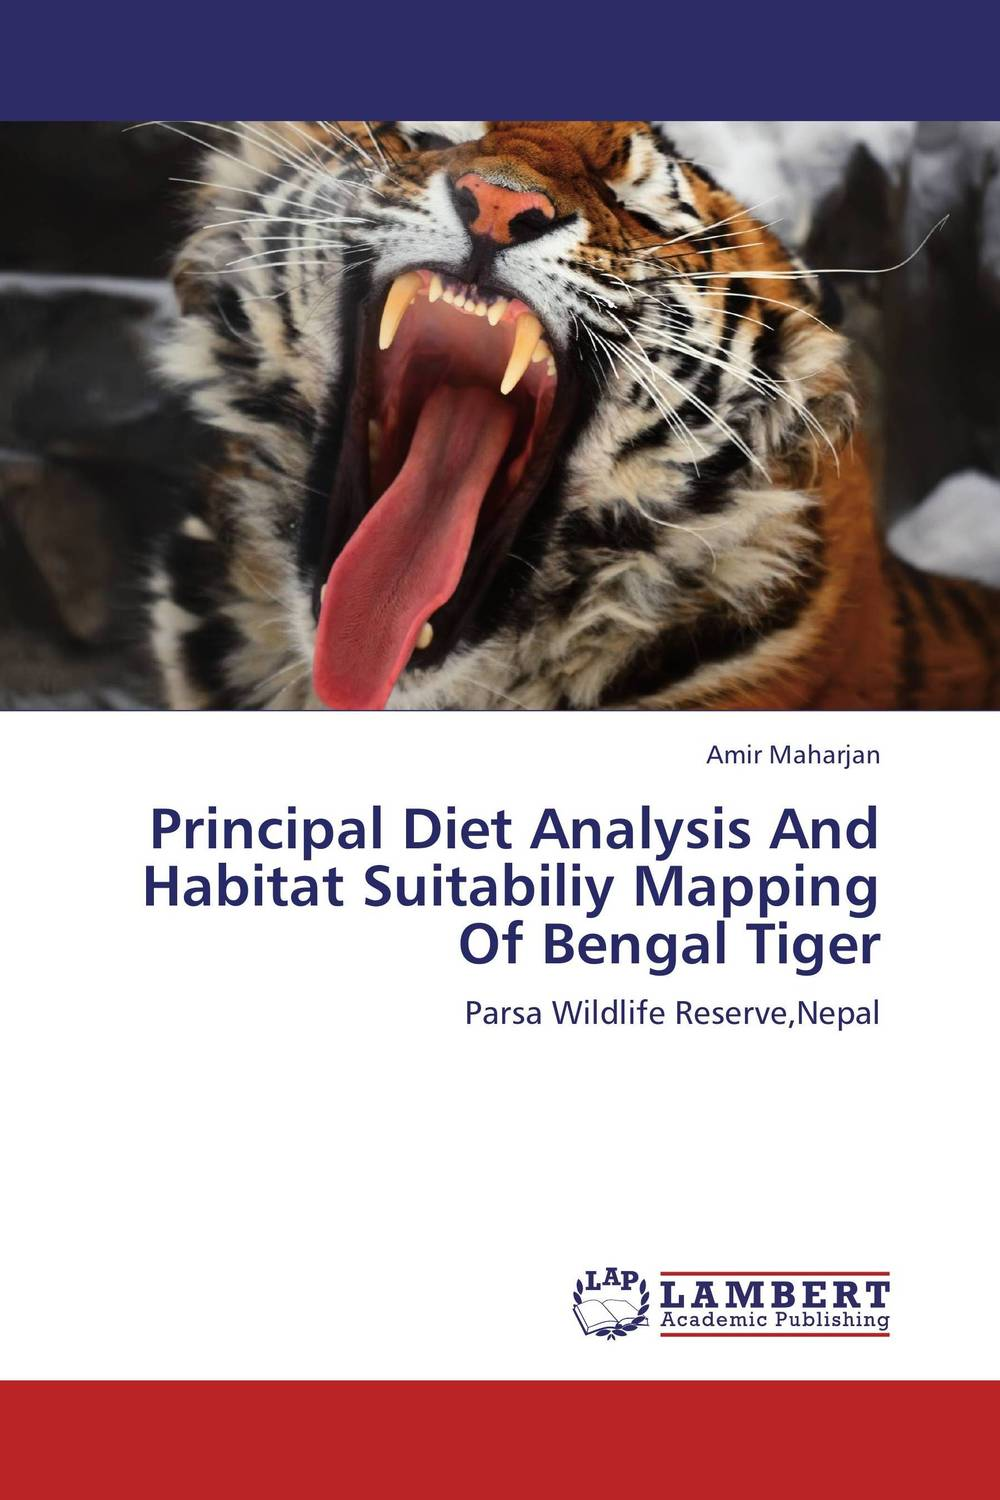 Principal Diet Analysis And Habitat Suitabiliy Mapping Of Bengal Tiger the fab diet